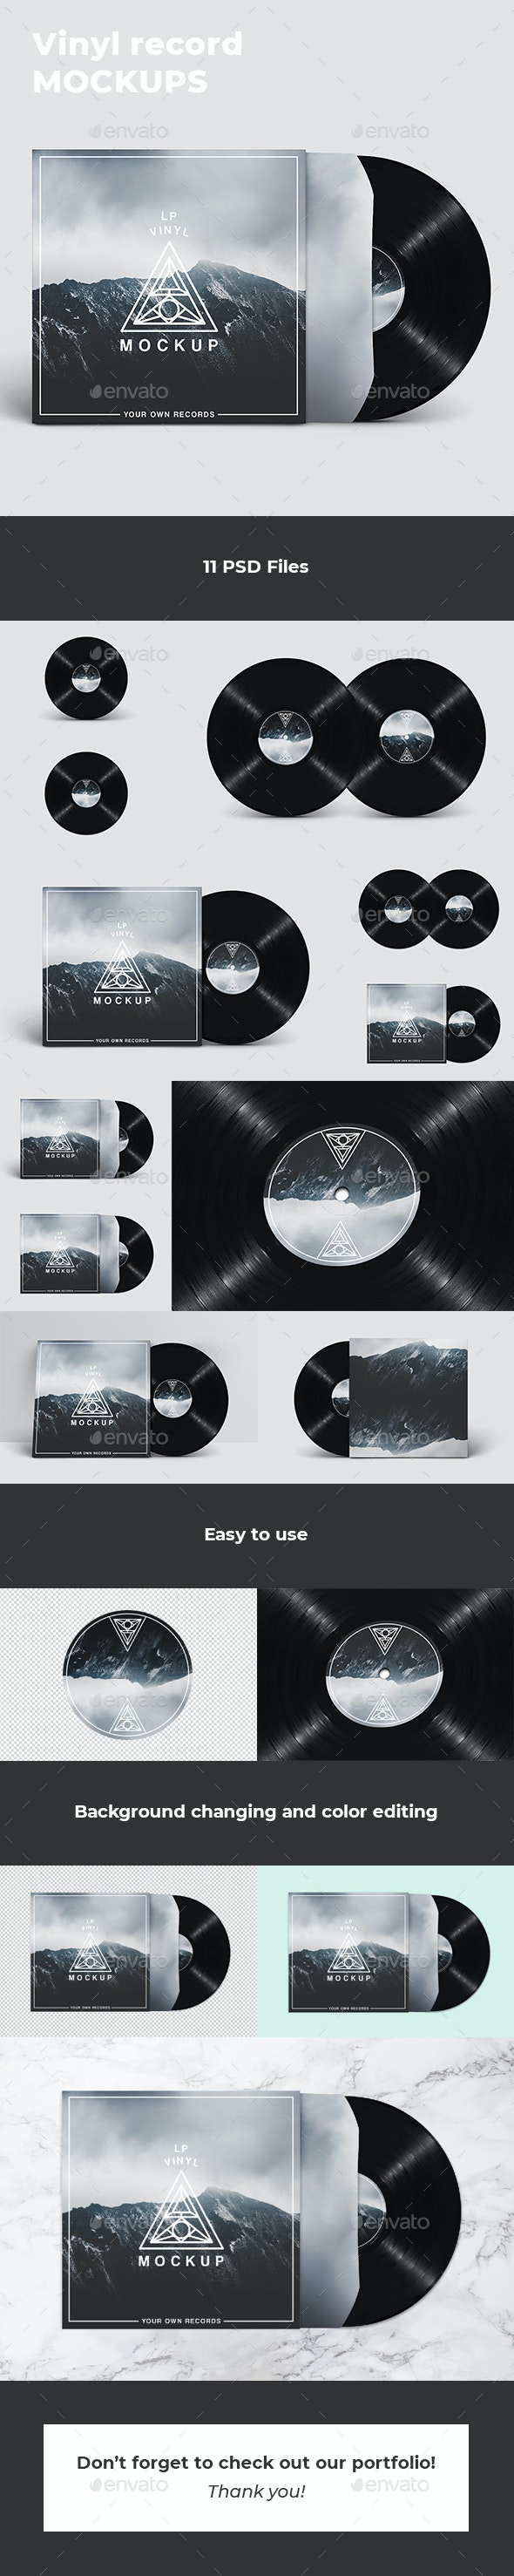 Vinyl Record Mockups - Discs Packaging